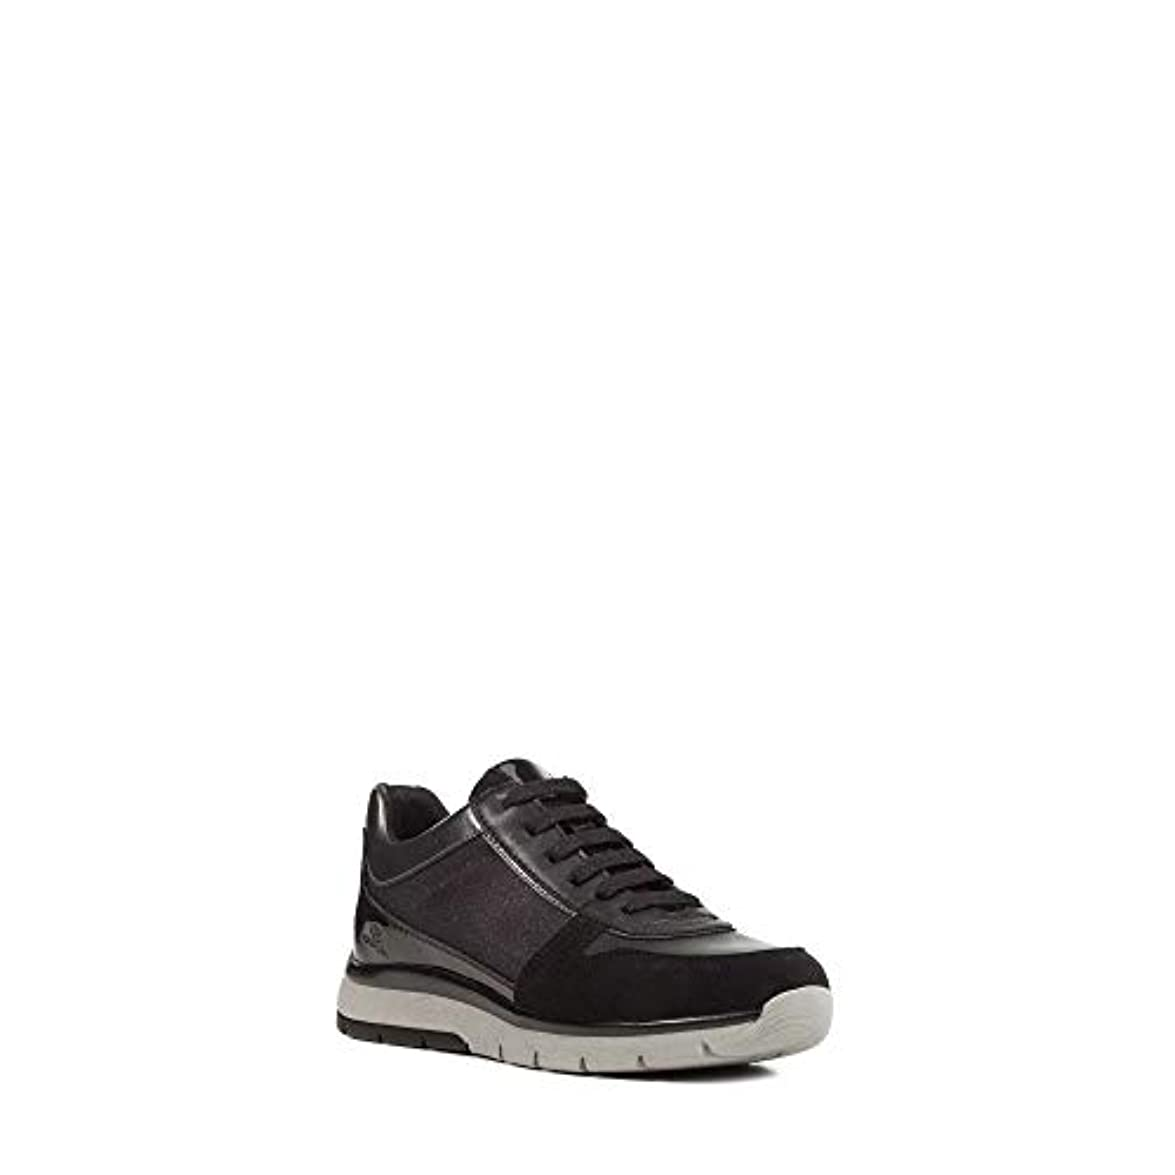 Sneakers 0ewbc Donna D849gd Geox